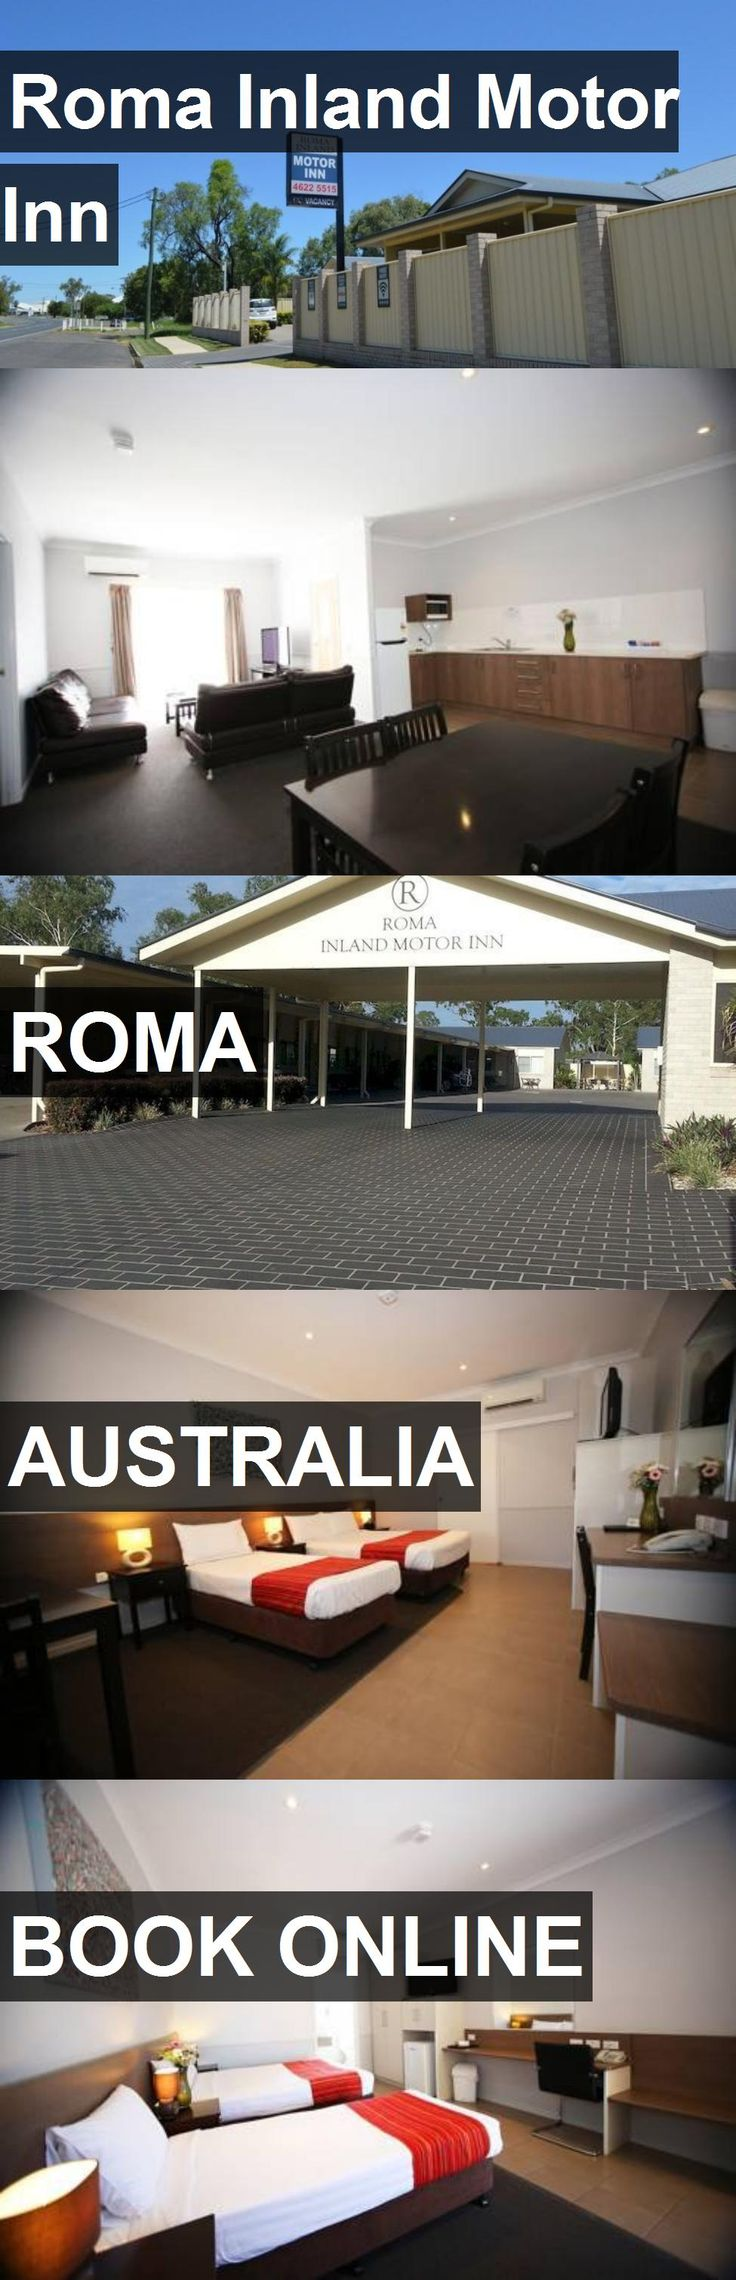 Hotel Roma Inland Motor Inn in Roma, Australia. For more information, photos, reviews and best prices please follow the link. #Australia #Roma #travel #vacation #hotel